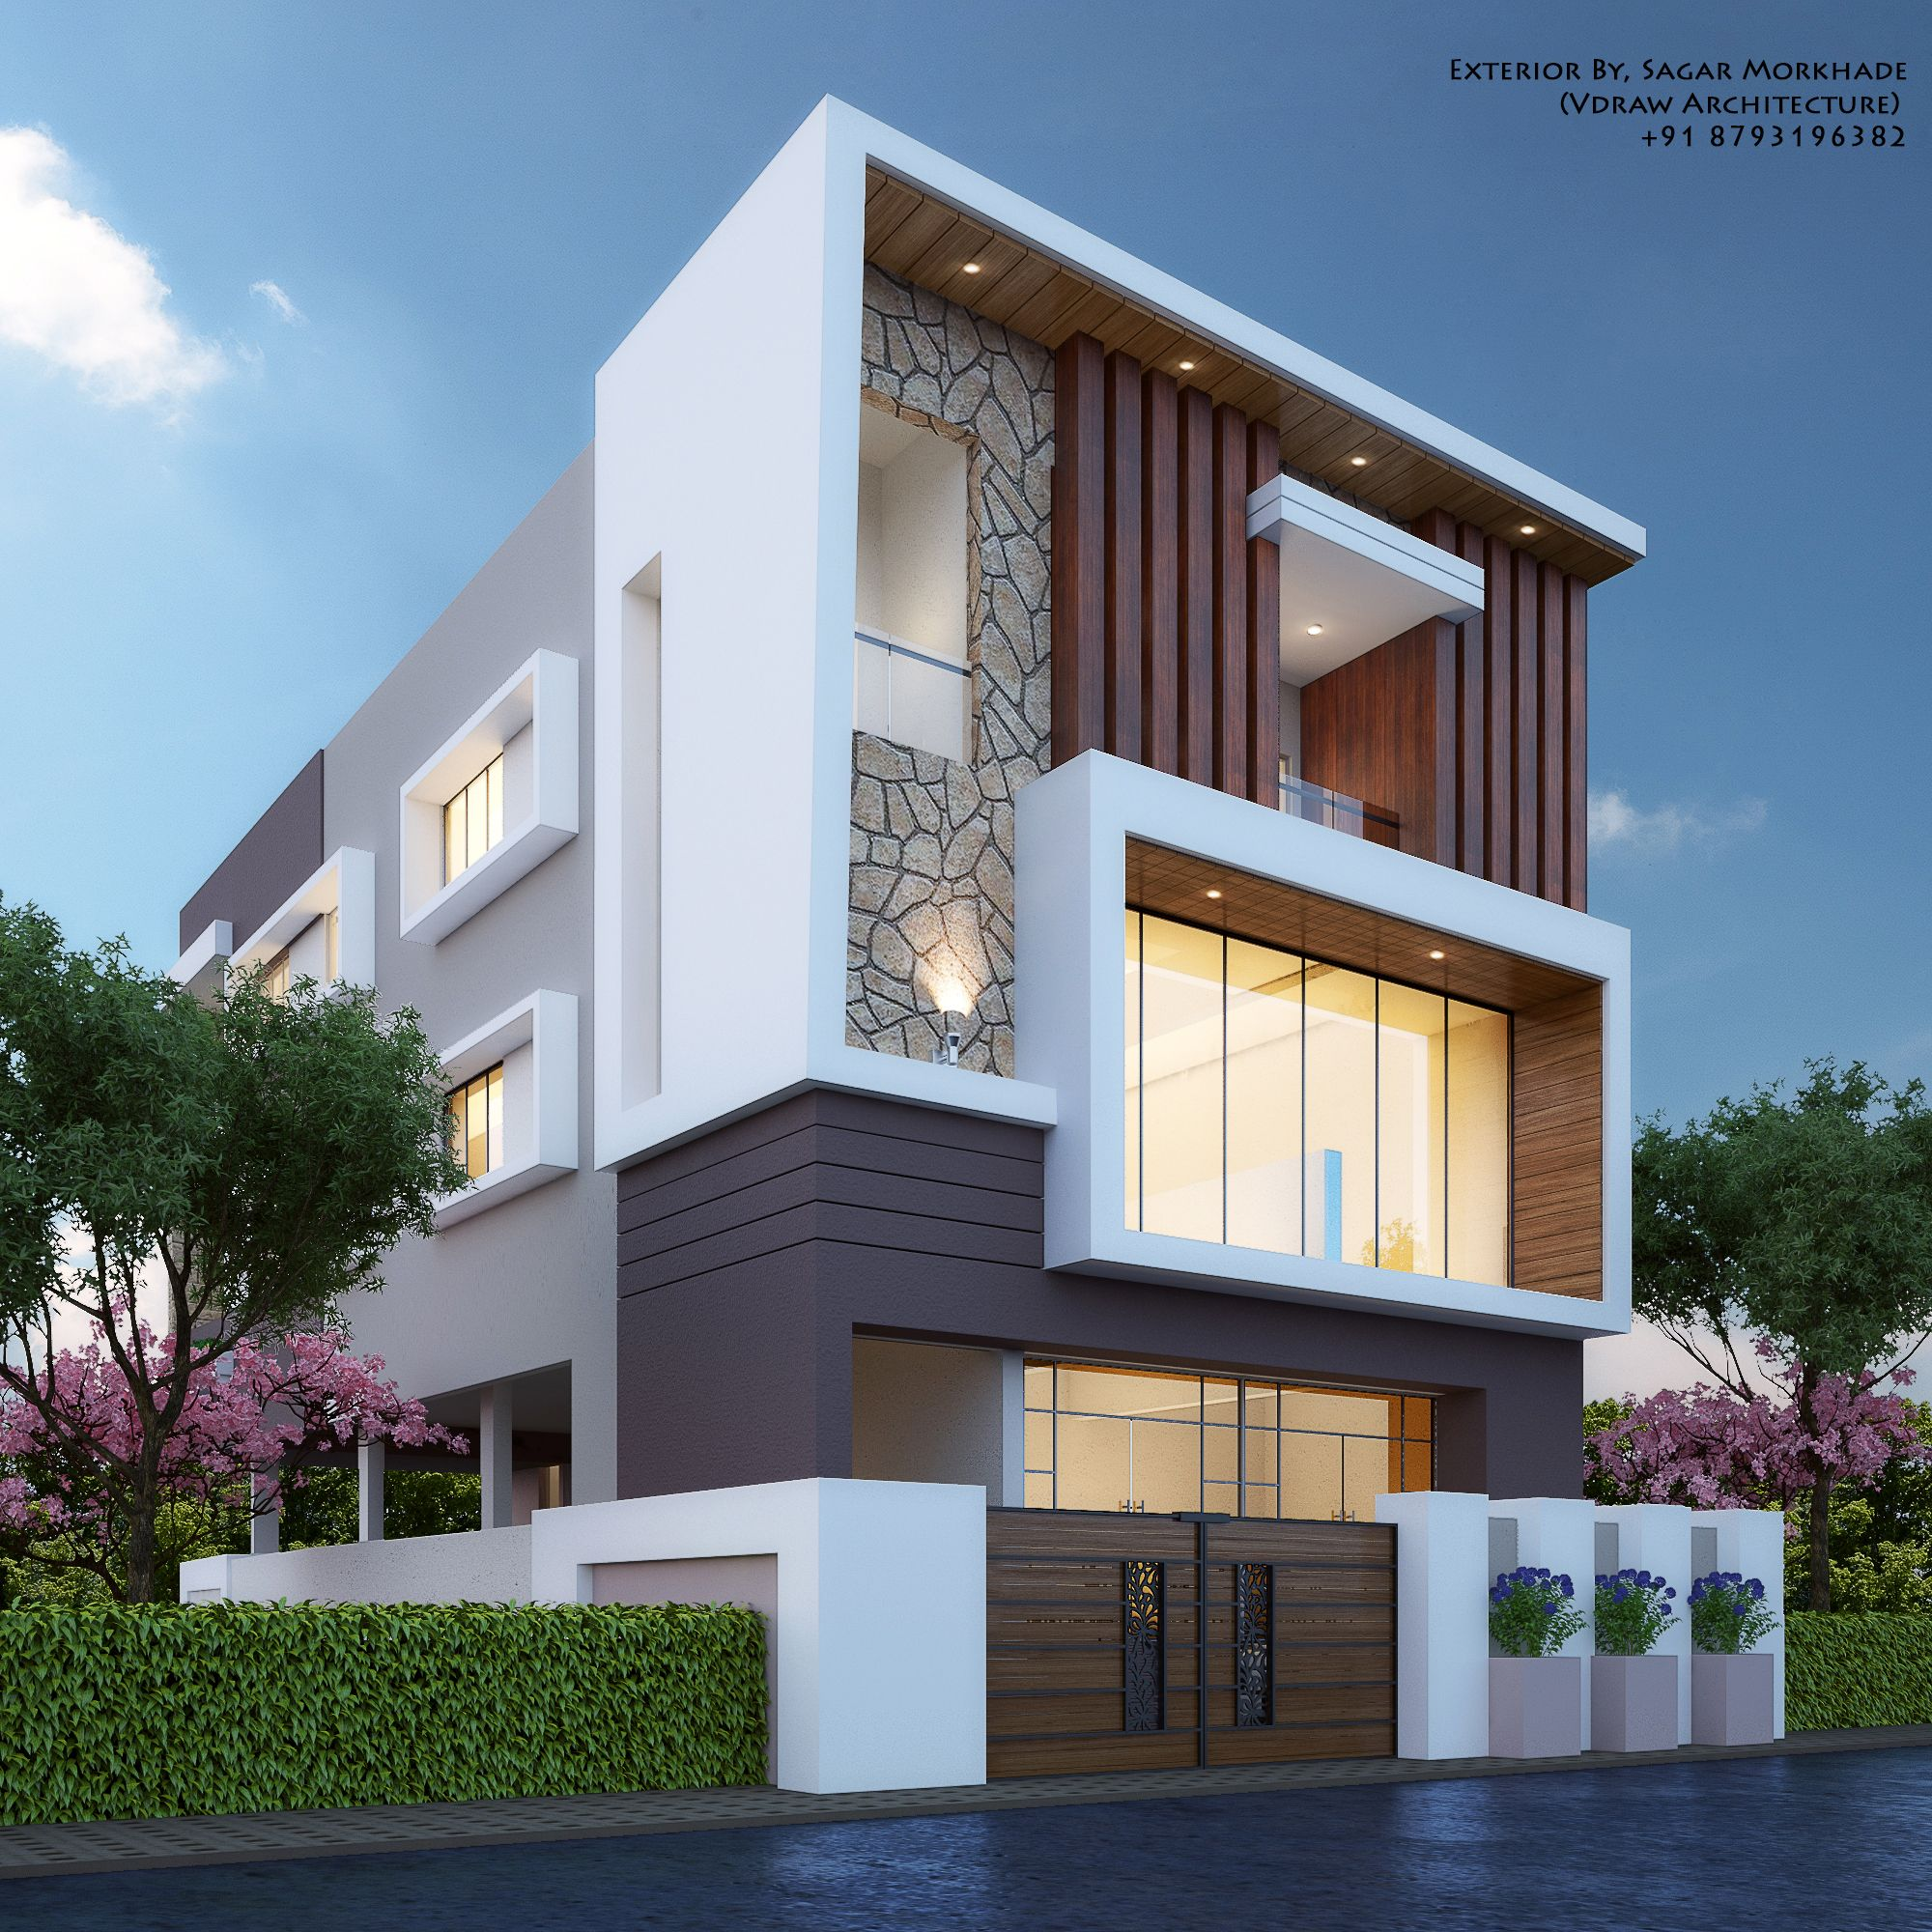 Modern Home Design Ideas Exterior: Modern House Bungalow Exterior By, Sagar Morkhade (Vdraw